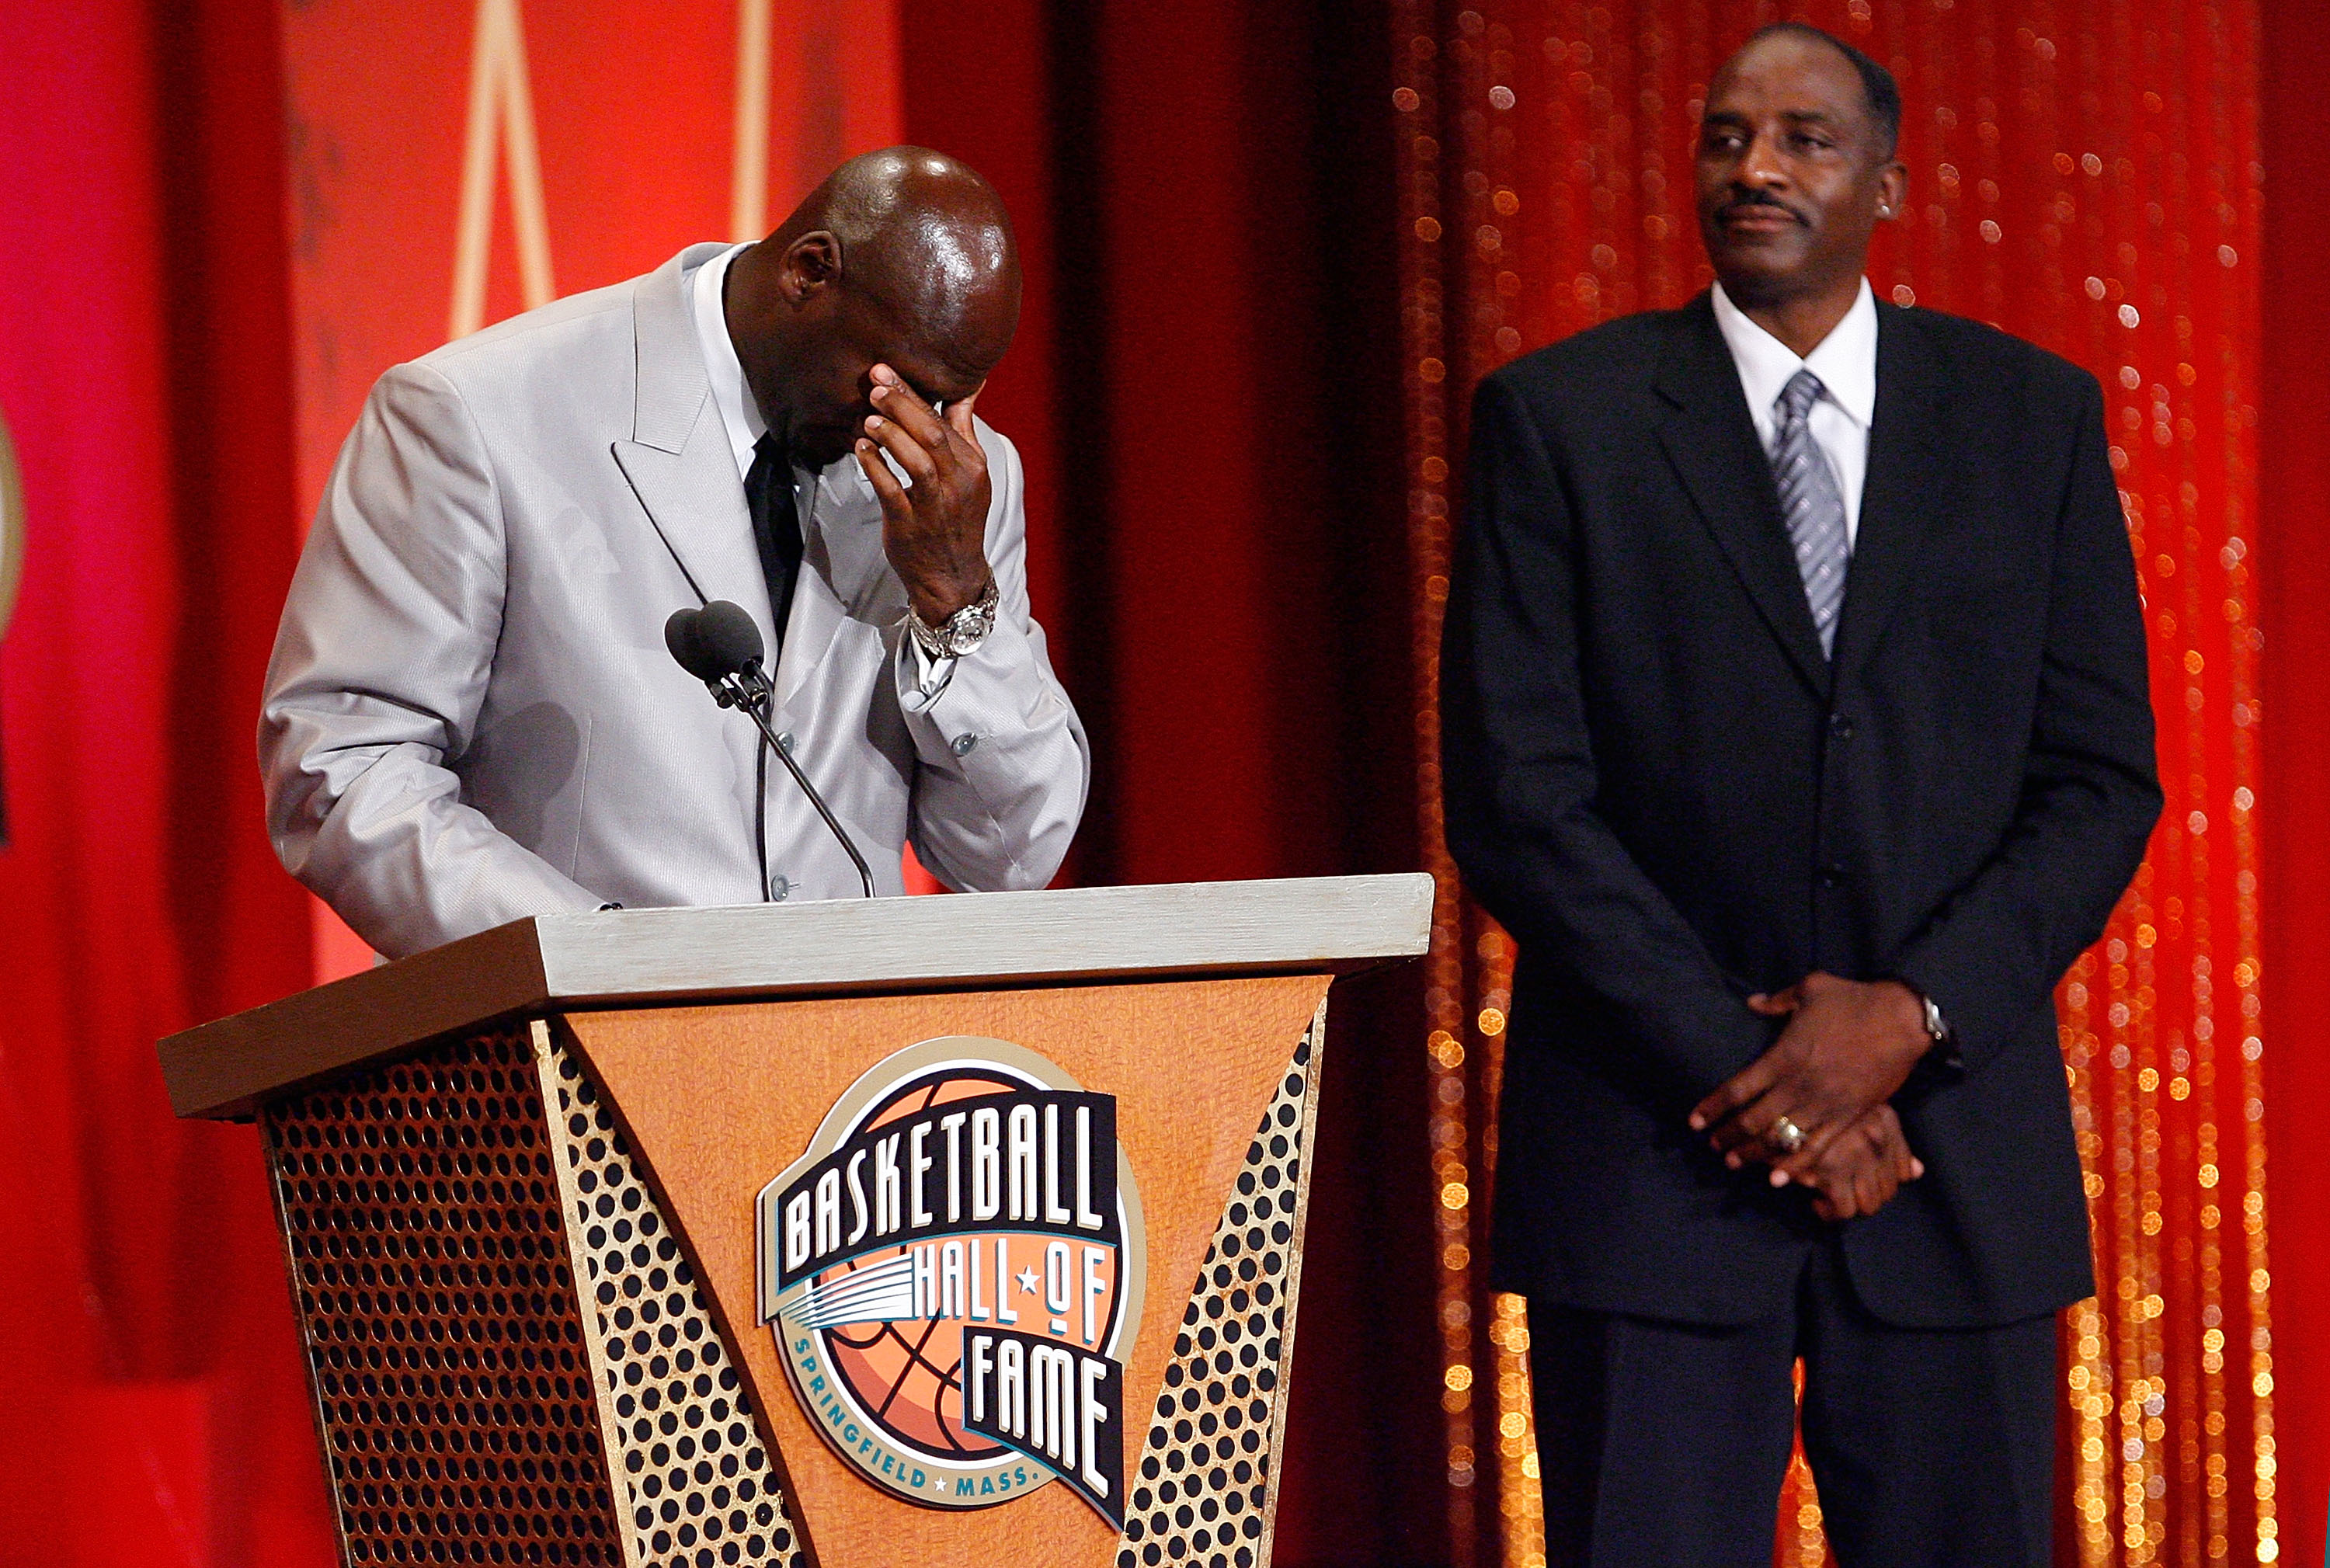 Thompson was there with MJ on induction day.